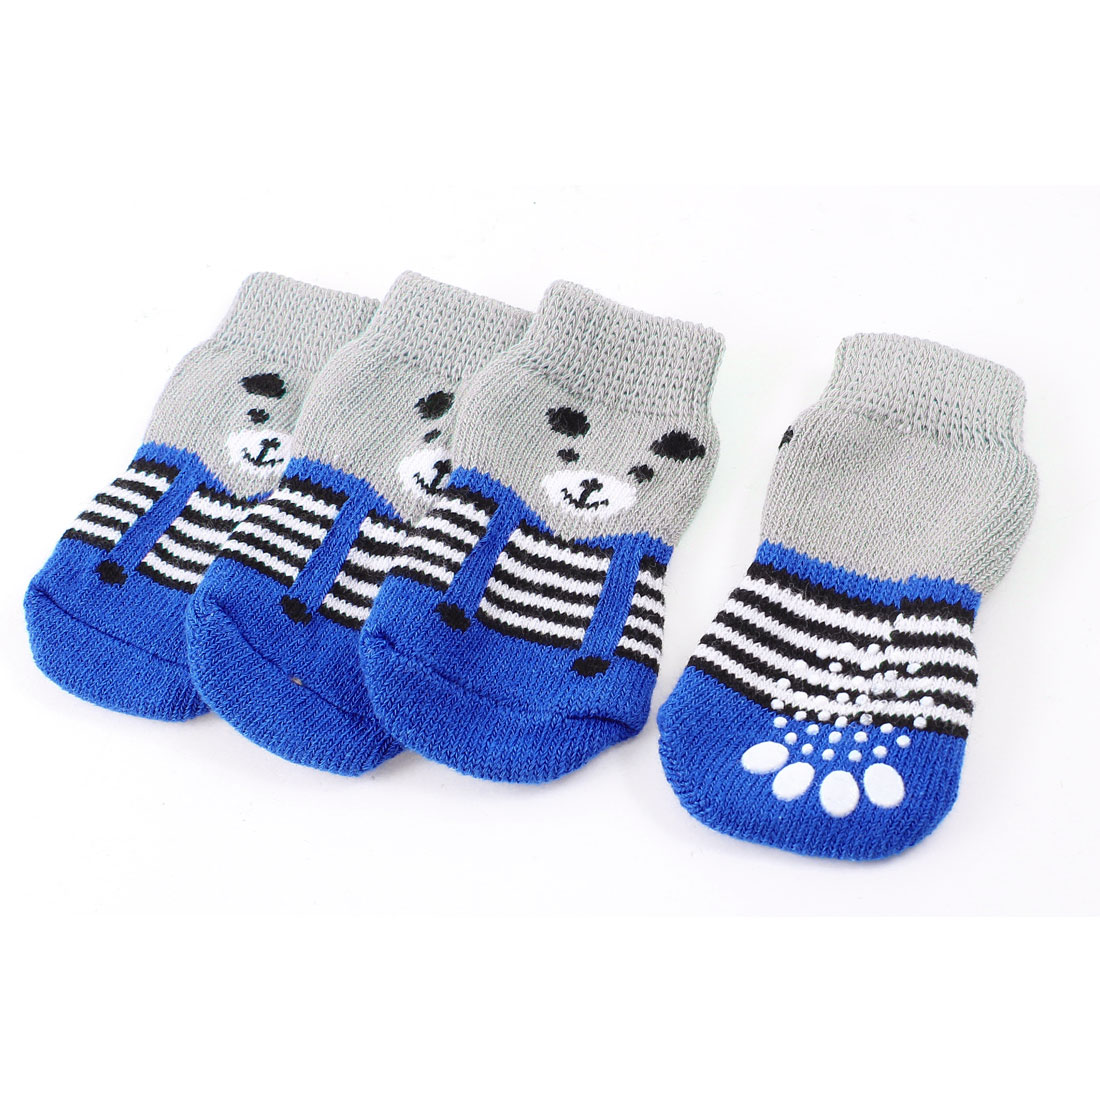 2 Pairs Gray Blue Nonslip Paw Printed Acrylic Doggie Puppy Pet Socks Size L